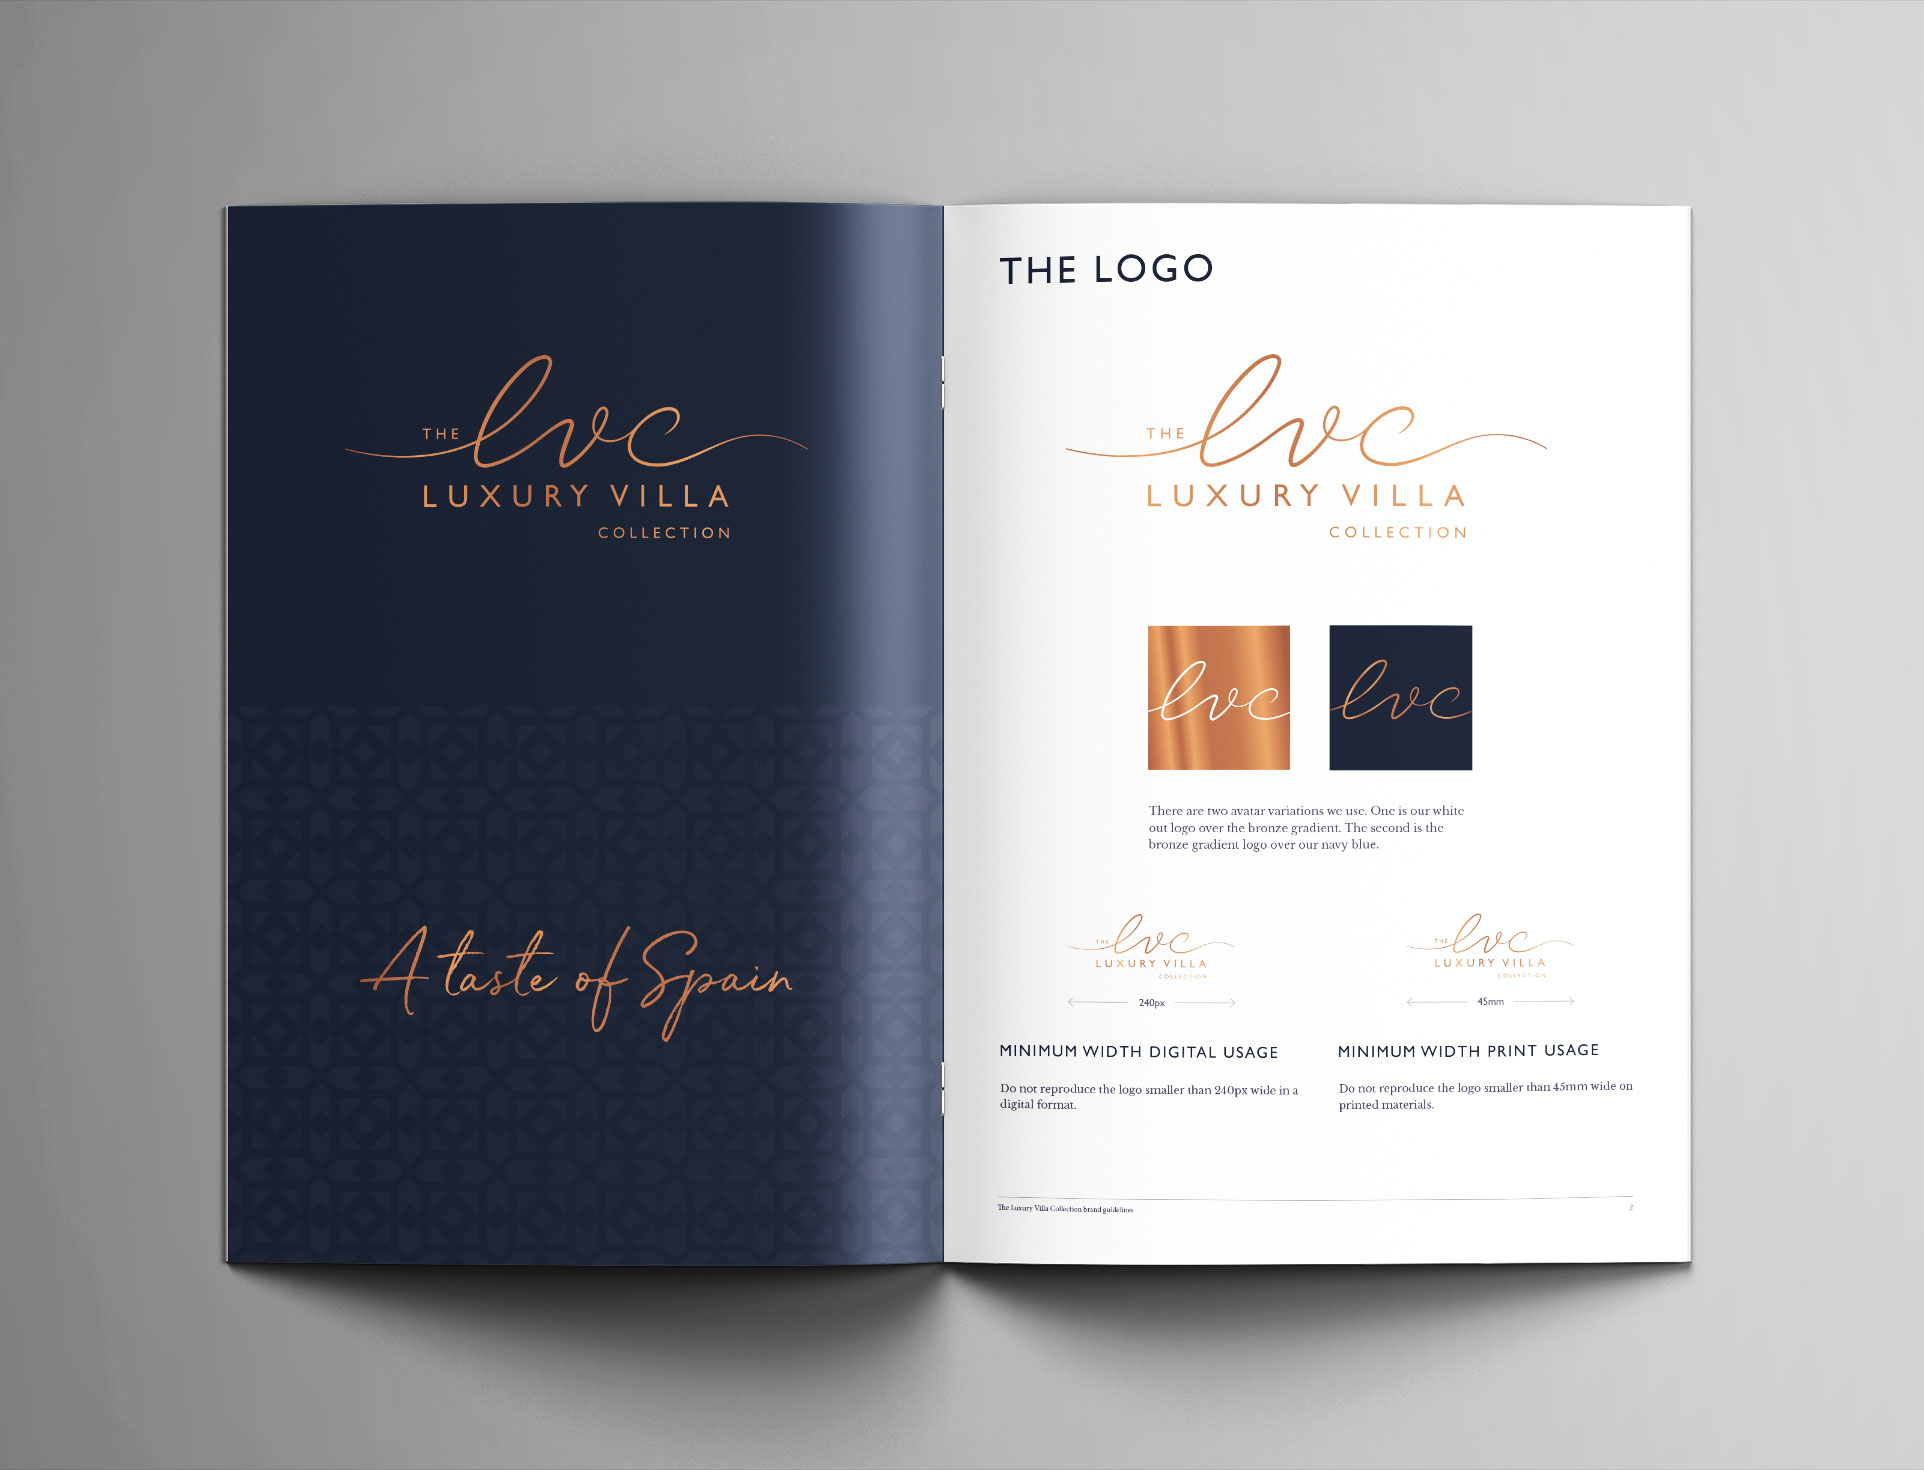 The Luxury Villa Collection brand guidelines